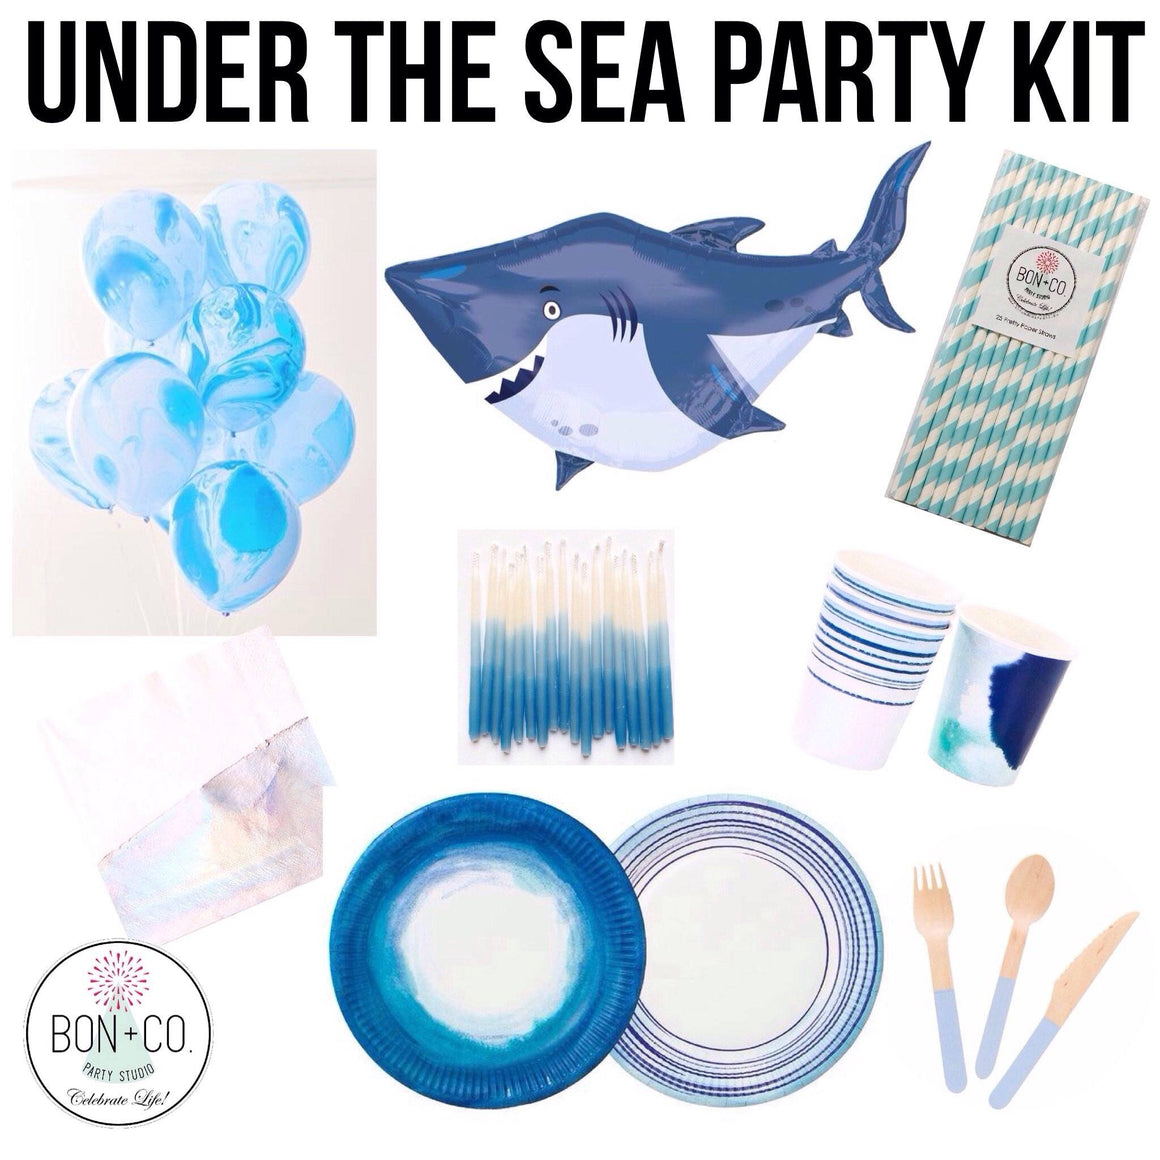 PARTY KIT - UNDER THE SEA